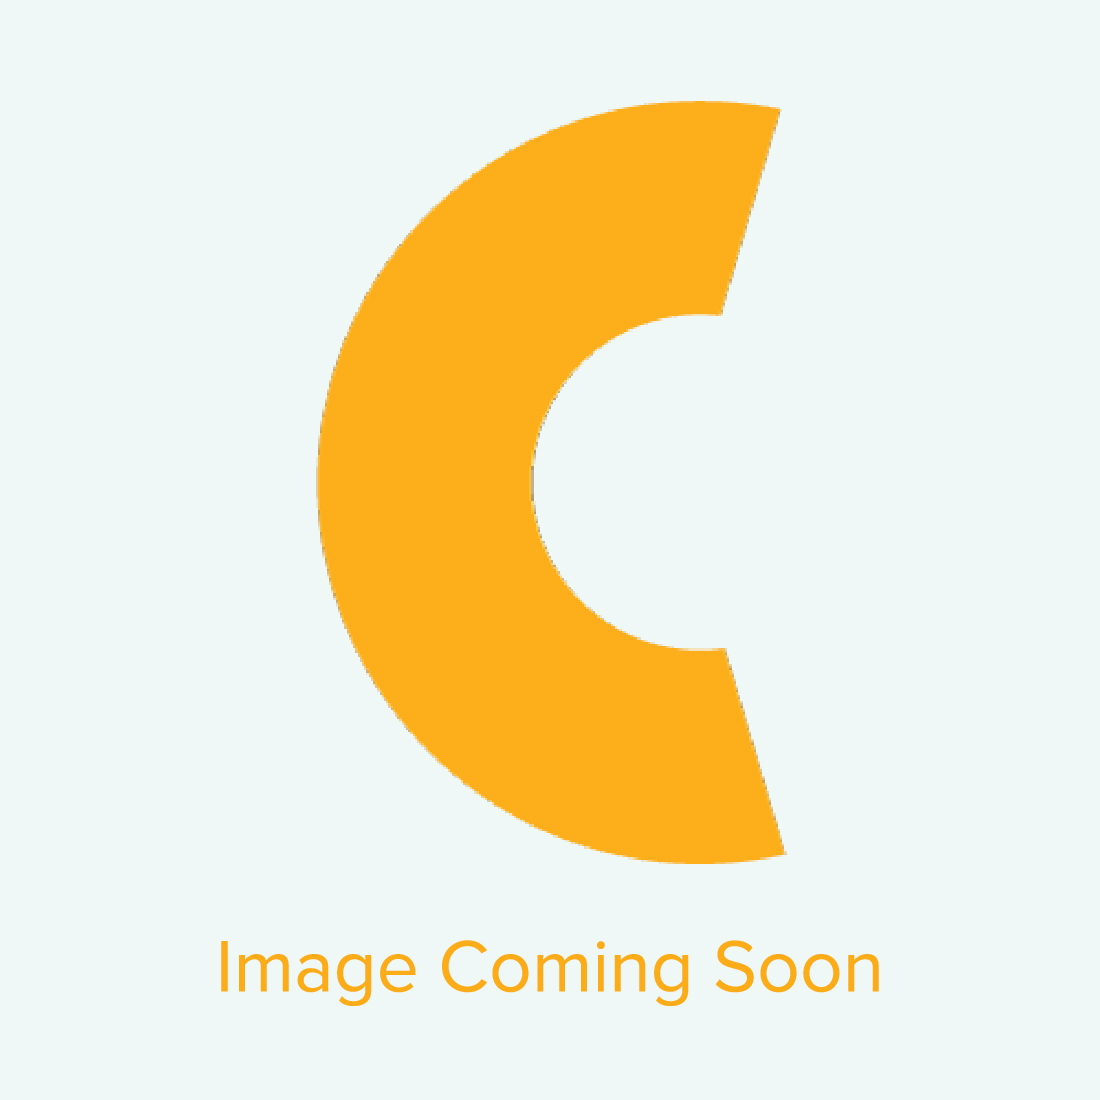 White Ceramic Shot Glass for Sublimation Printing - 1.5oz